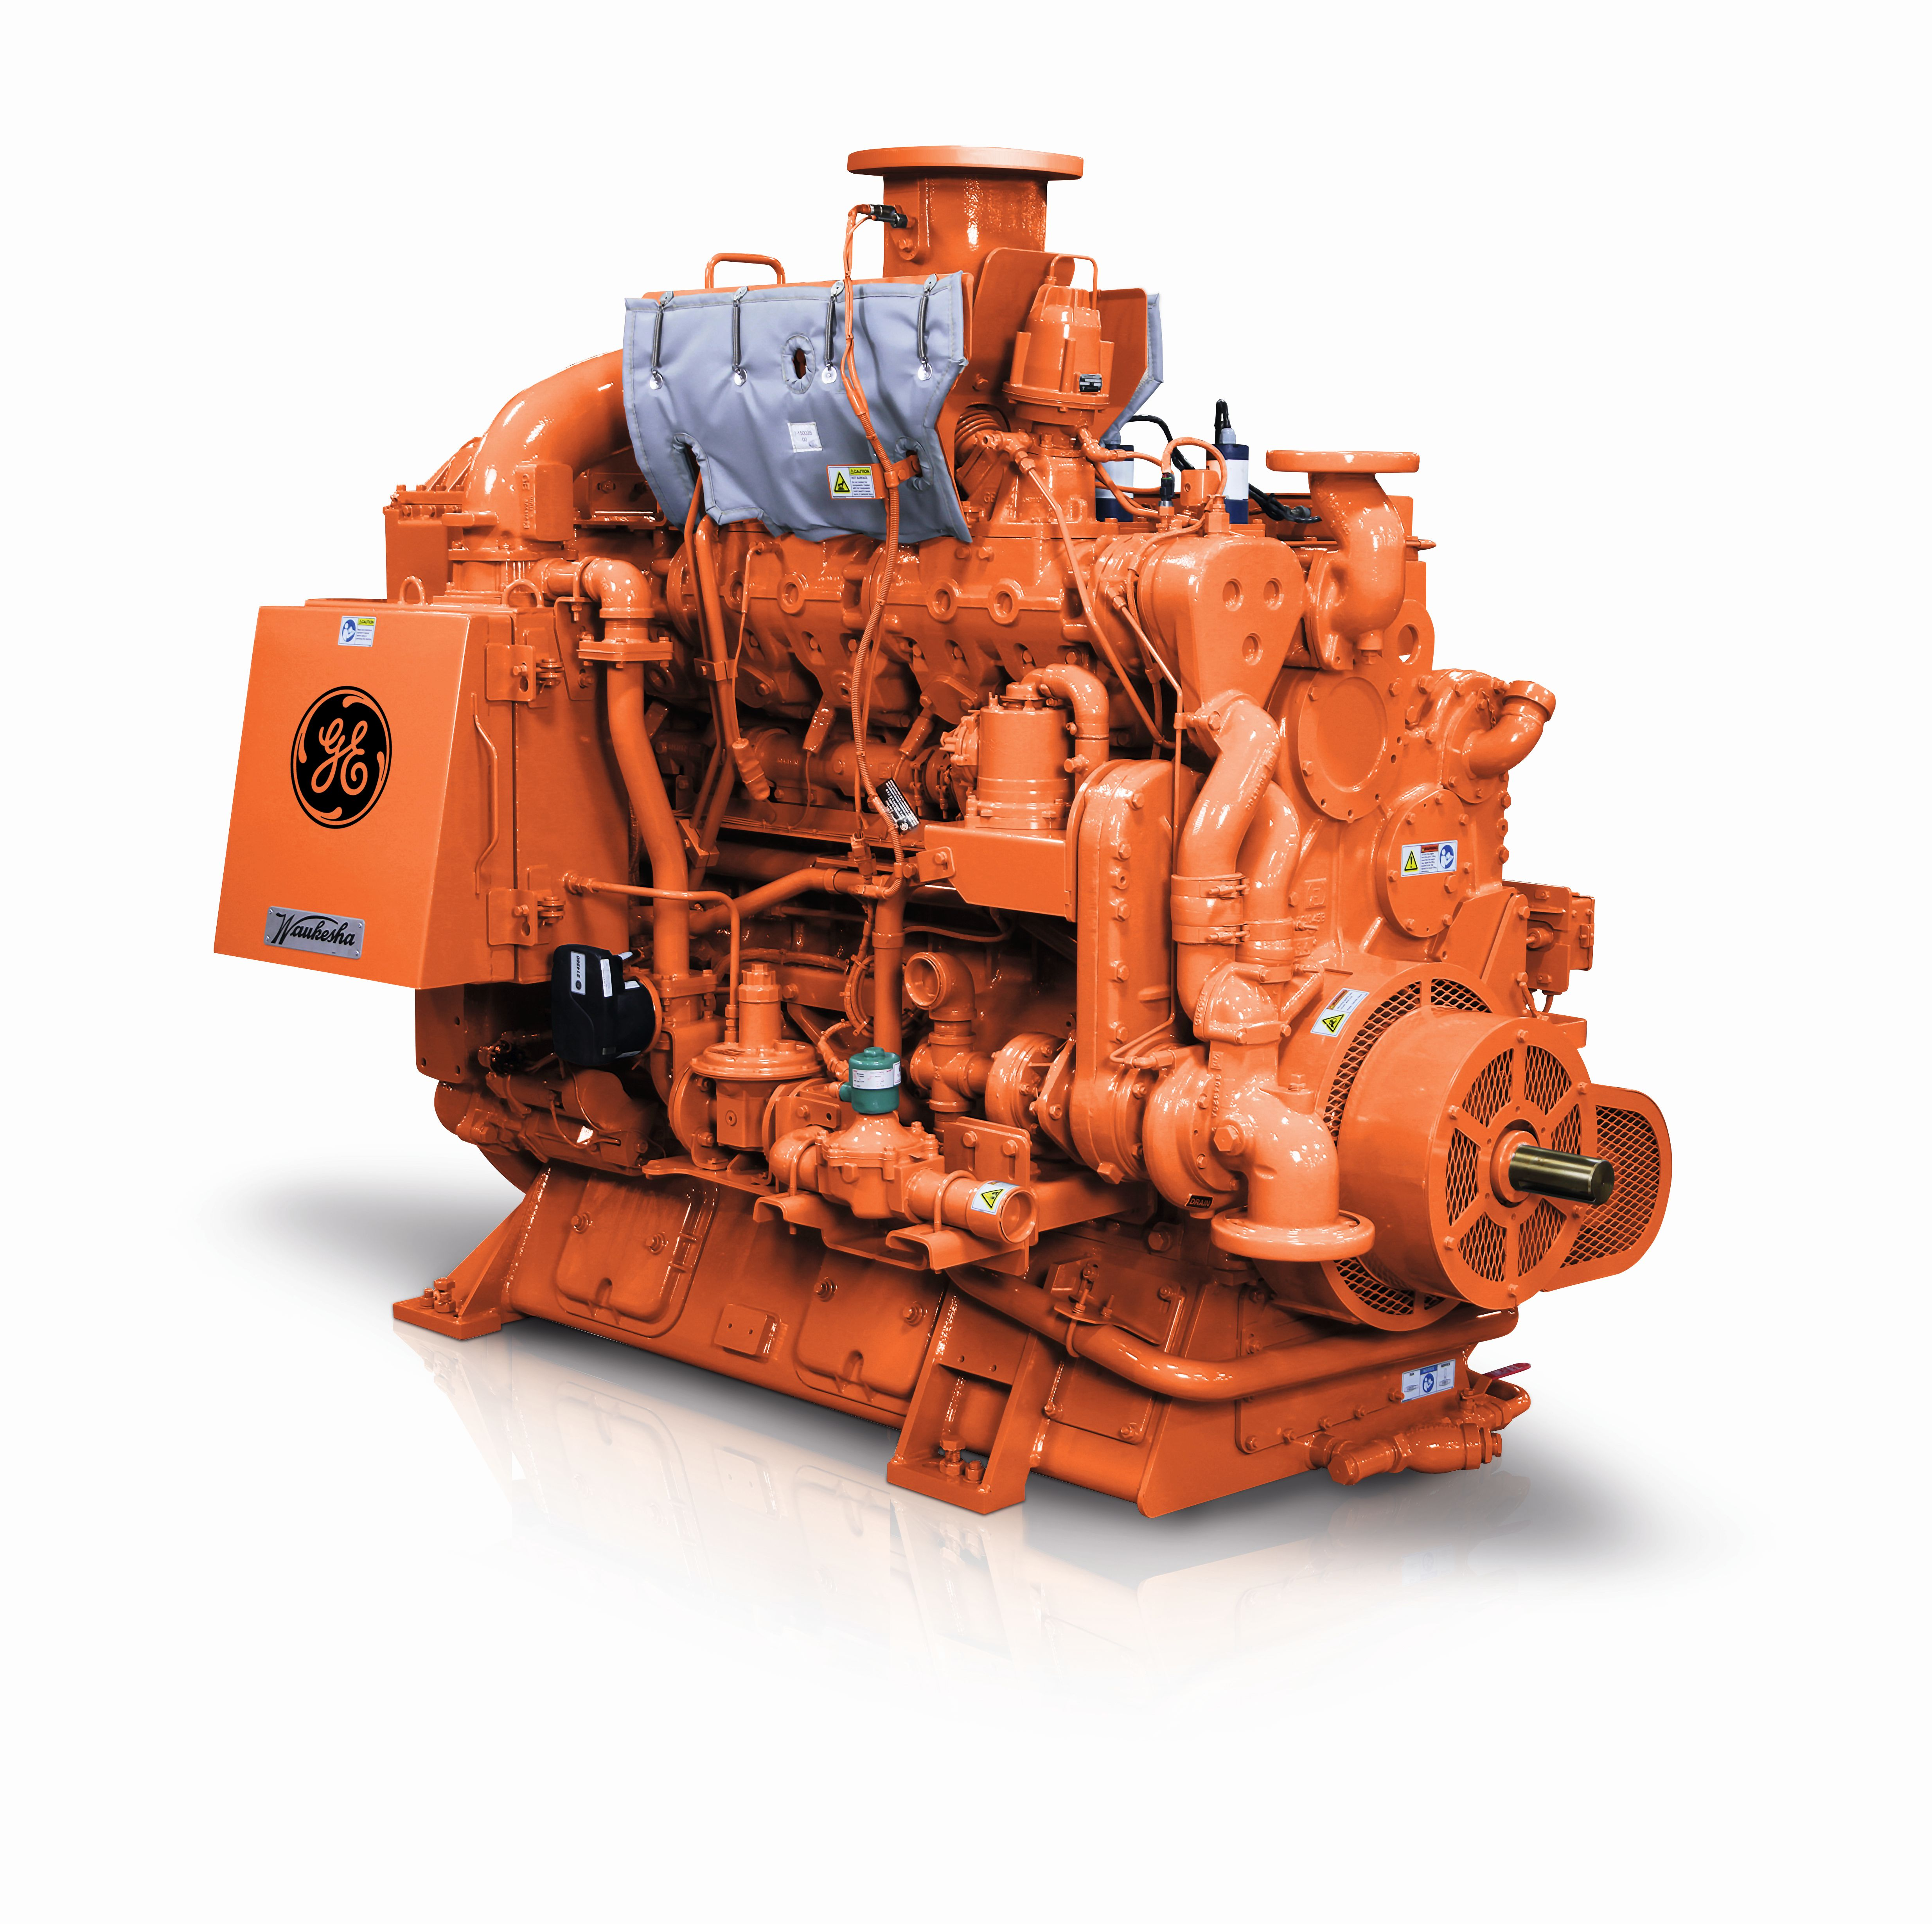 GE Launches New Waukesha VGF Gas Engines with Advanced Controls